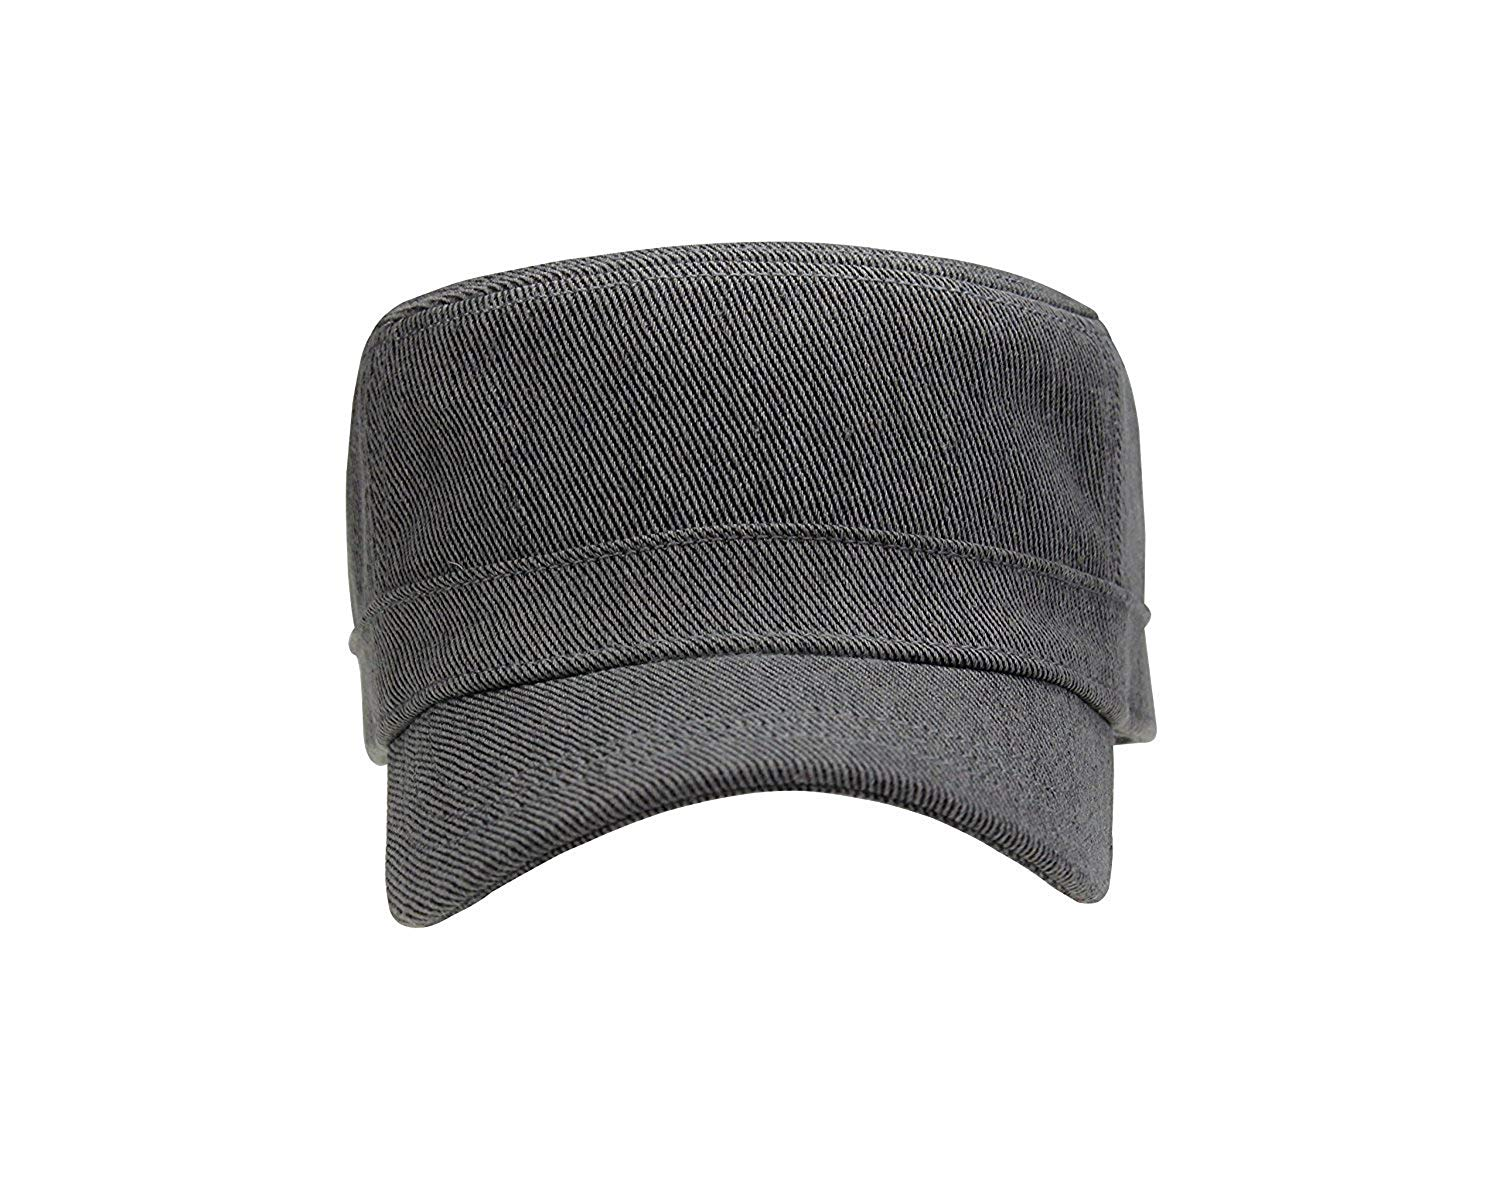 70822f6b5 Cheap Mens Army Caps, find Mens Army Caps deals on line at Alibaba.com